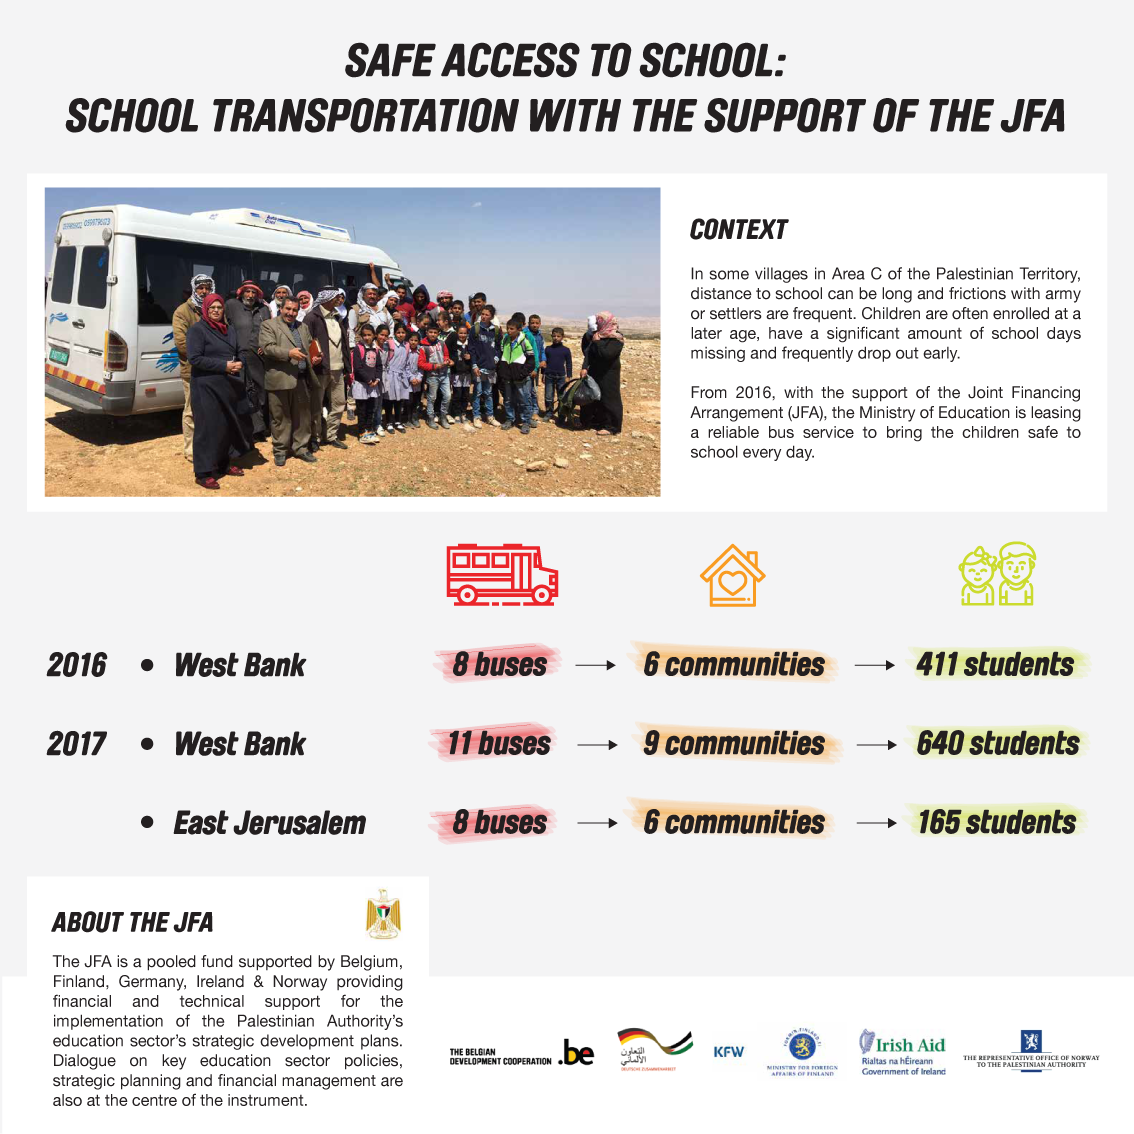 Safe access to school: school transportation with the support of the JFA